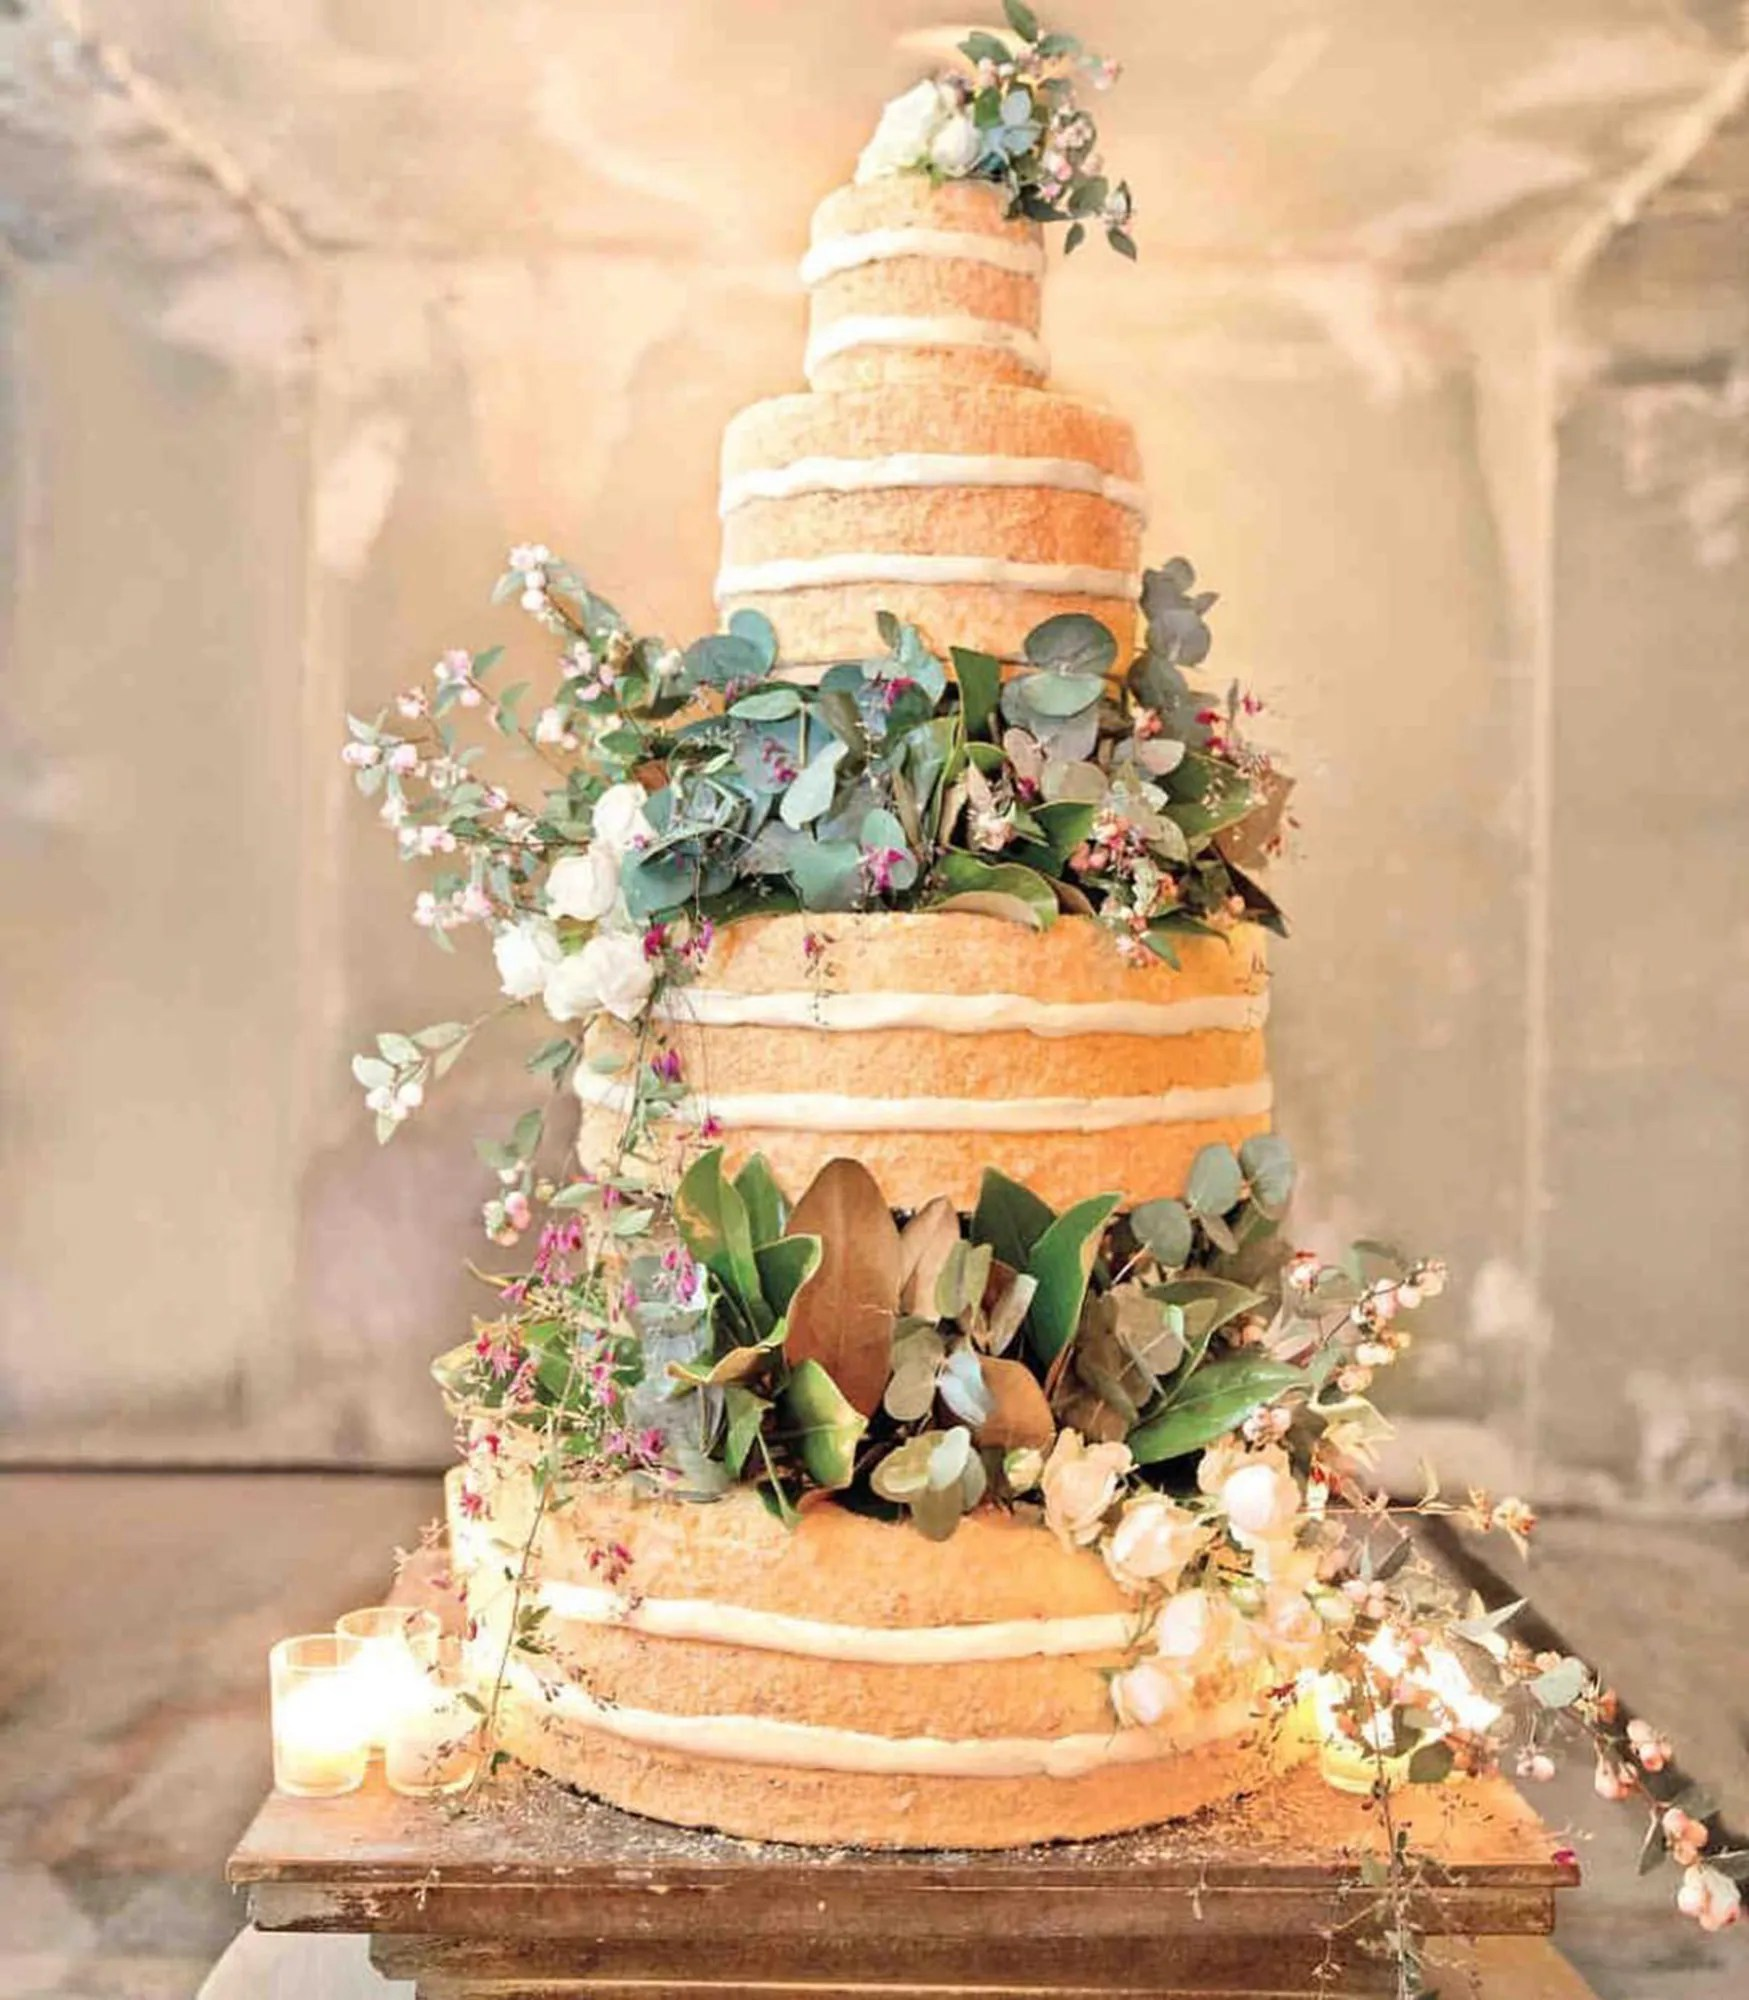 Unusual Celebrity Wedding Cakes  Chrissy Teigen s Carrot Cake  Royal     Unusual Celebrity Wedding Cakes  Chrissy Teigen s Carrot Cake  Royal Wedding  Cakes and More   Vogue